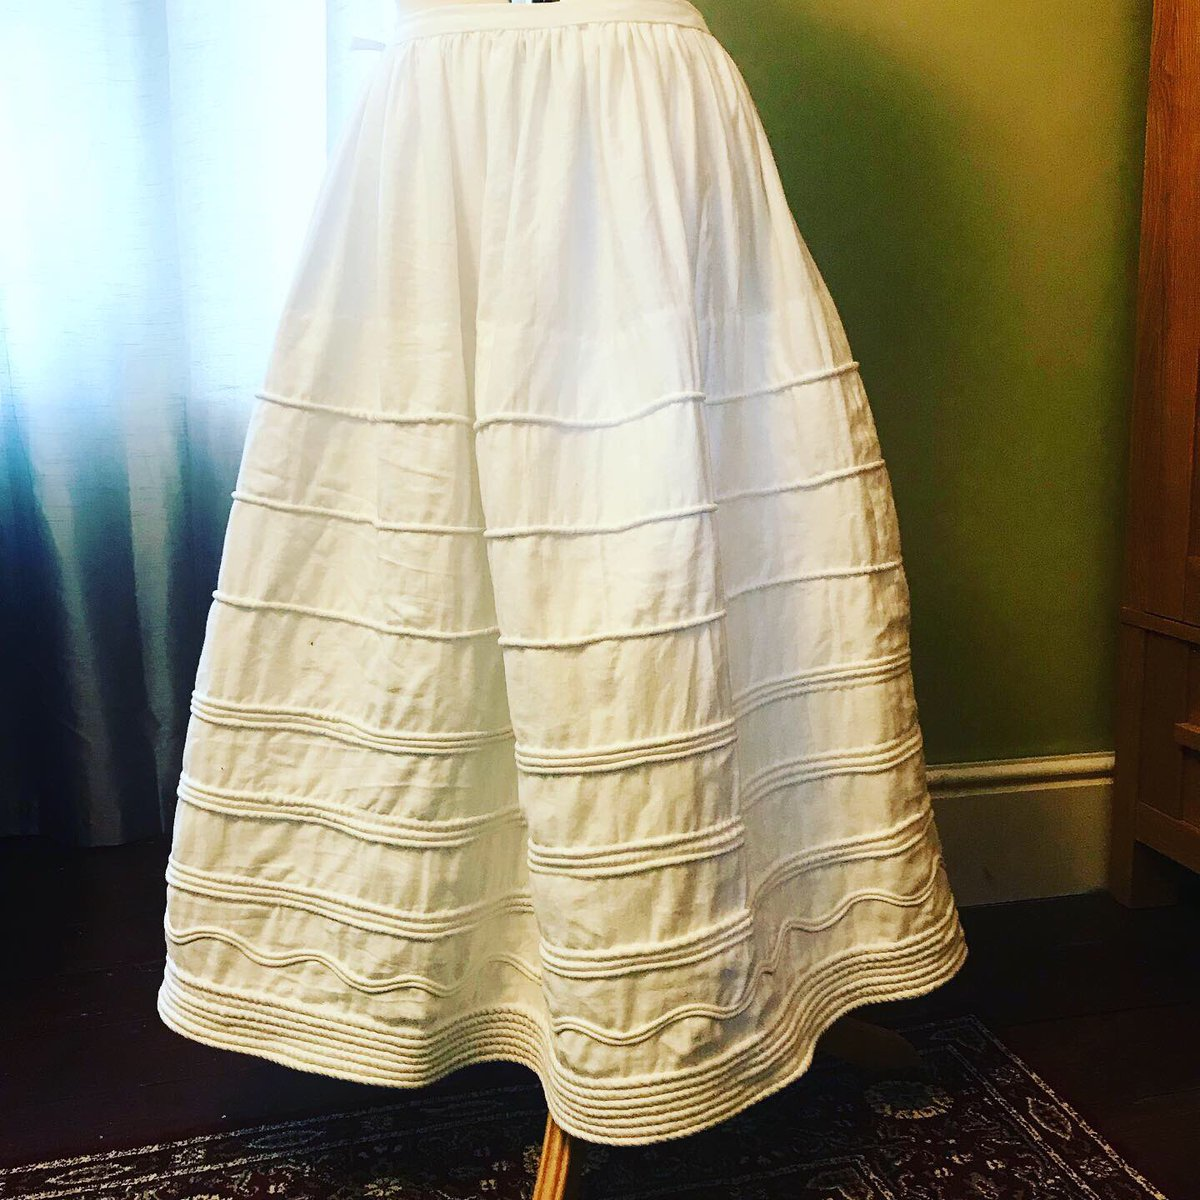 Hooray! Today's success: completed my new 1830s corded petticoat. <br>http://pic.twitter.com/HSdQvIU90Y